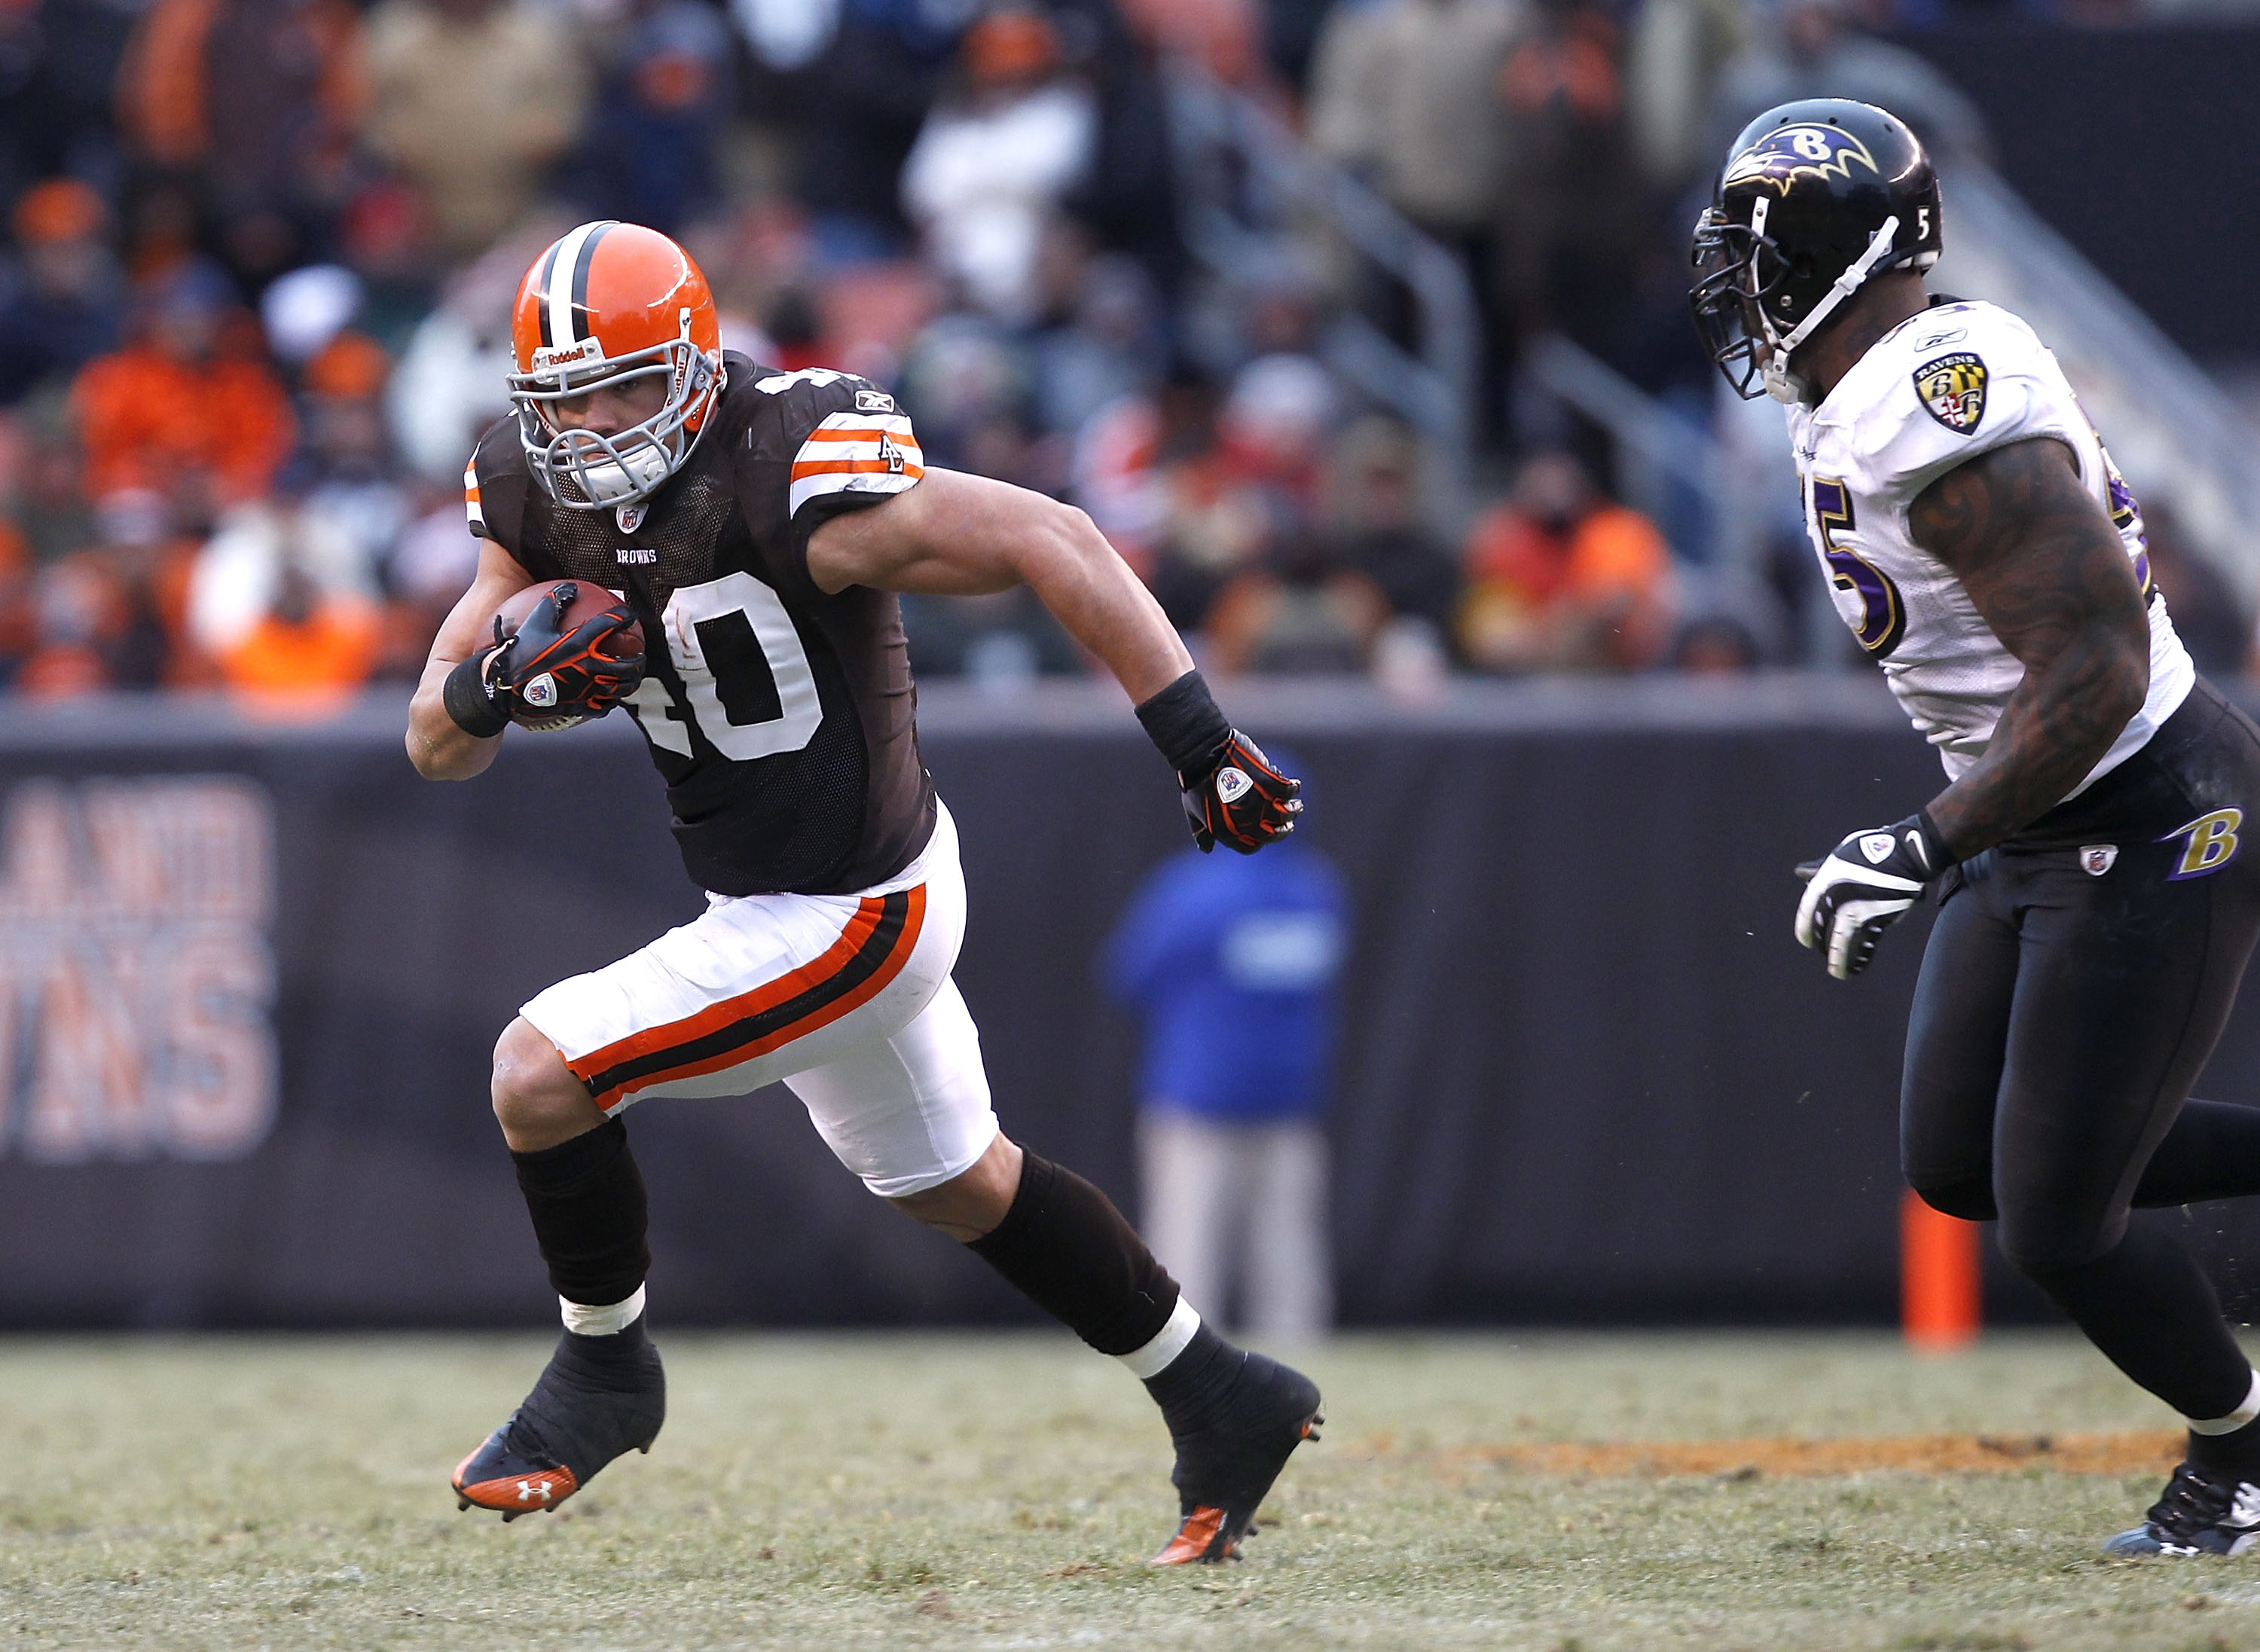 ffc50eec724 CLEVELAND - DECEMBER 26: Tailback Peyton Hillis #40 of the Cleveland Browns  runs the